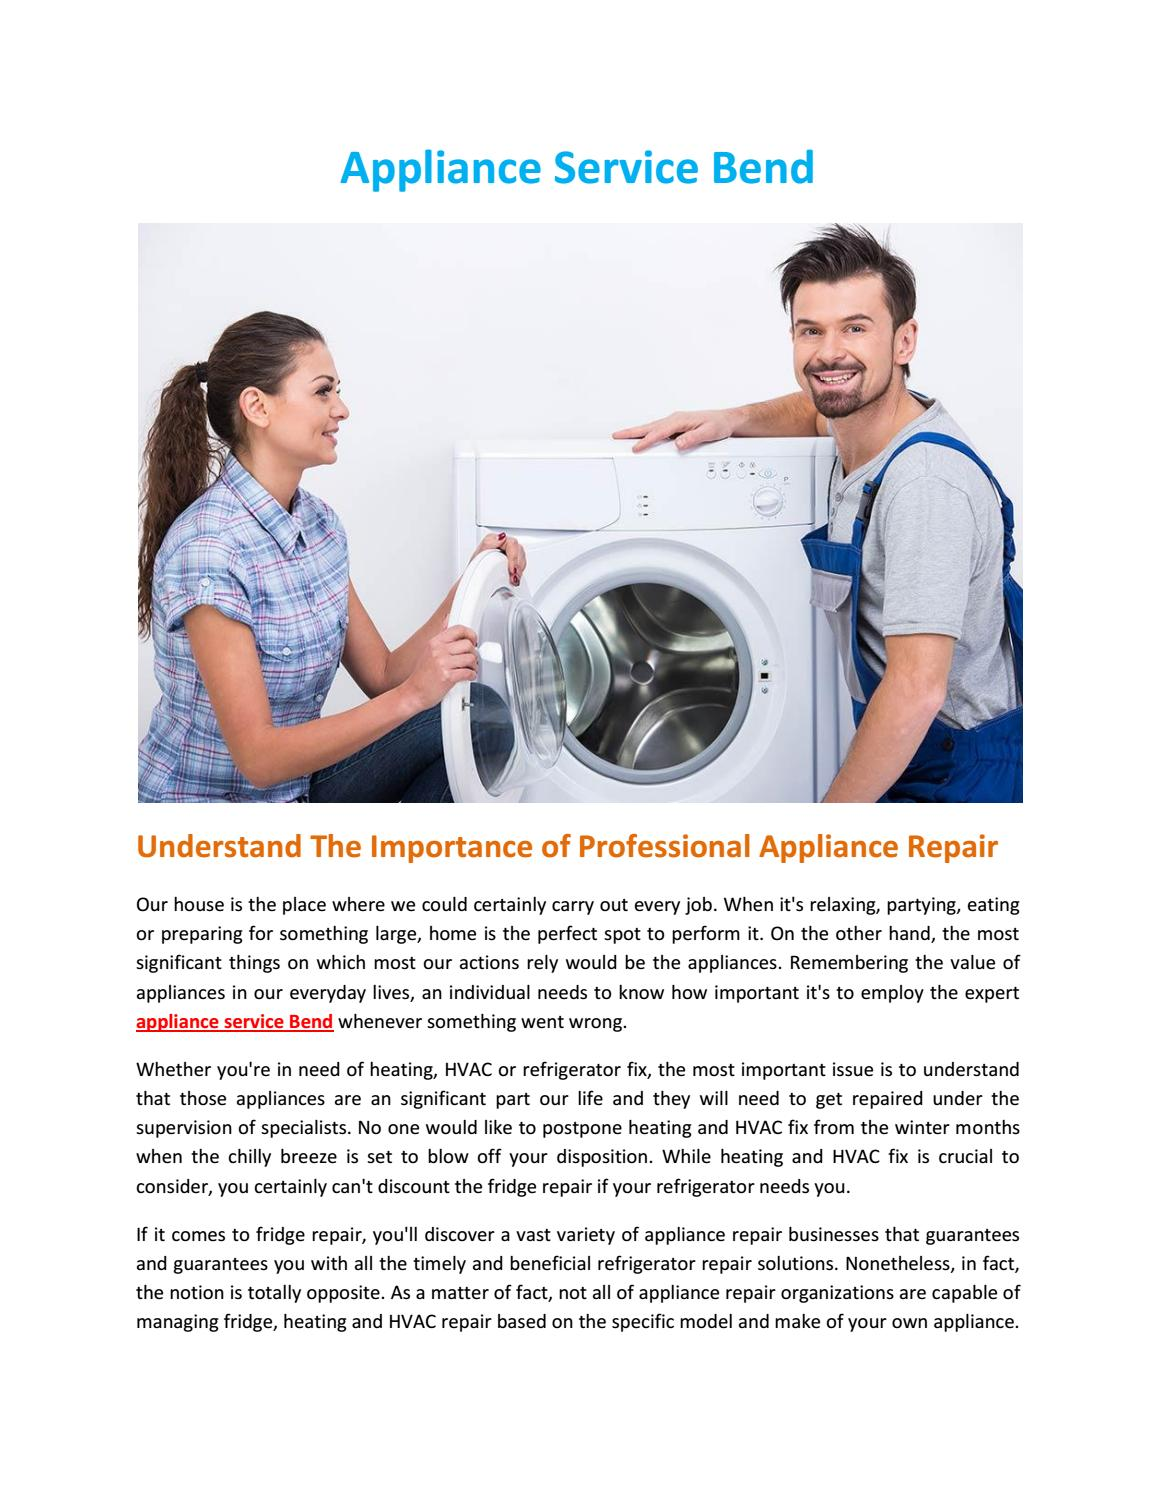 Appliance service bend by Frank Sallee - issuu